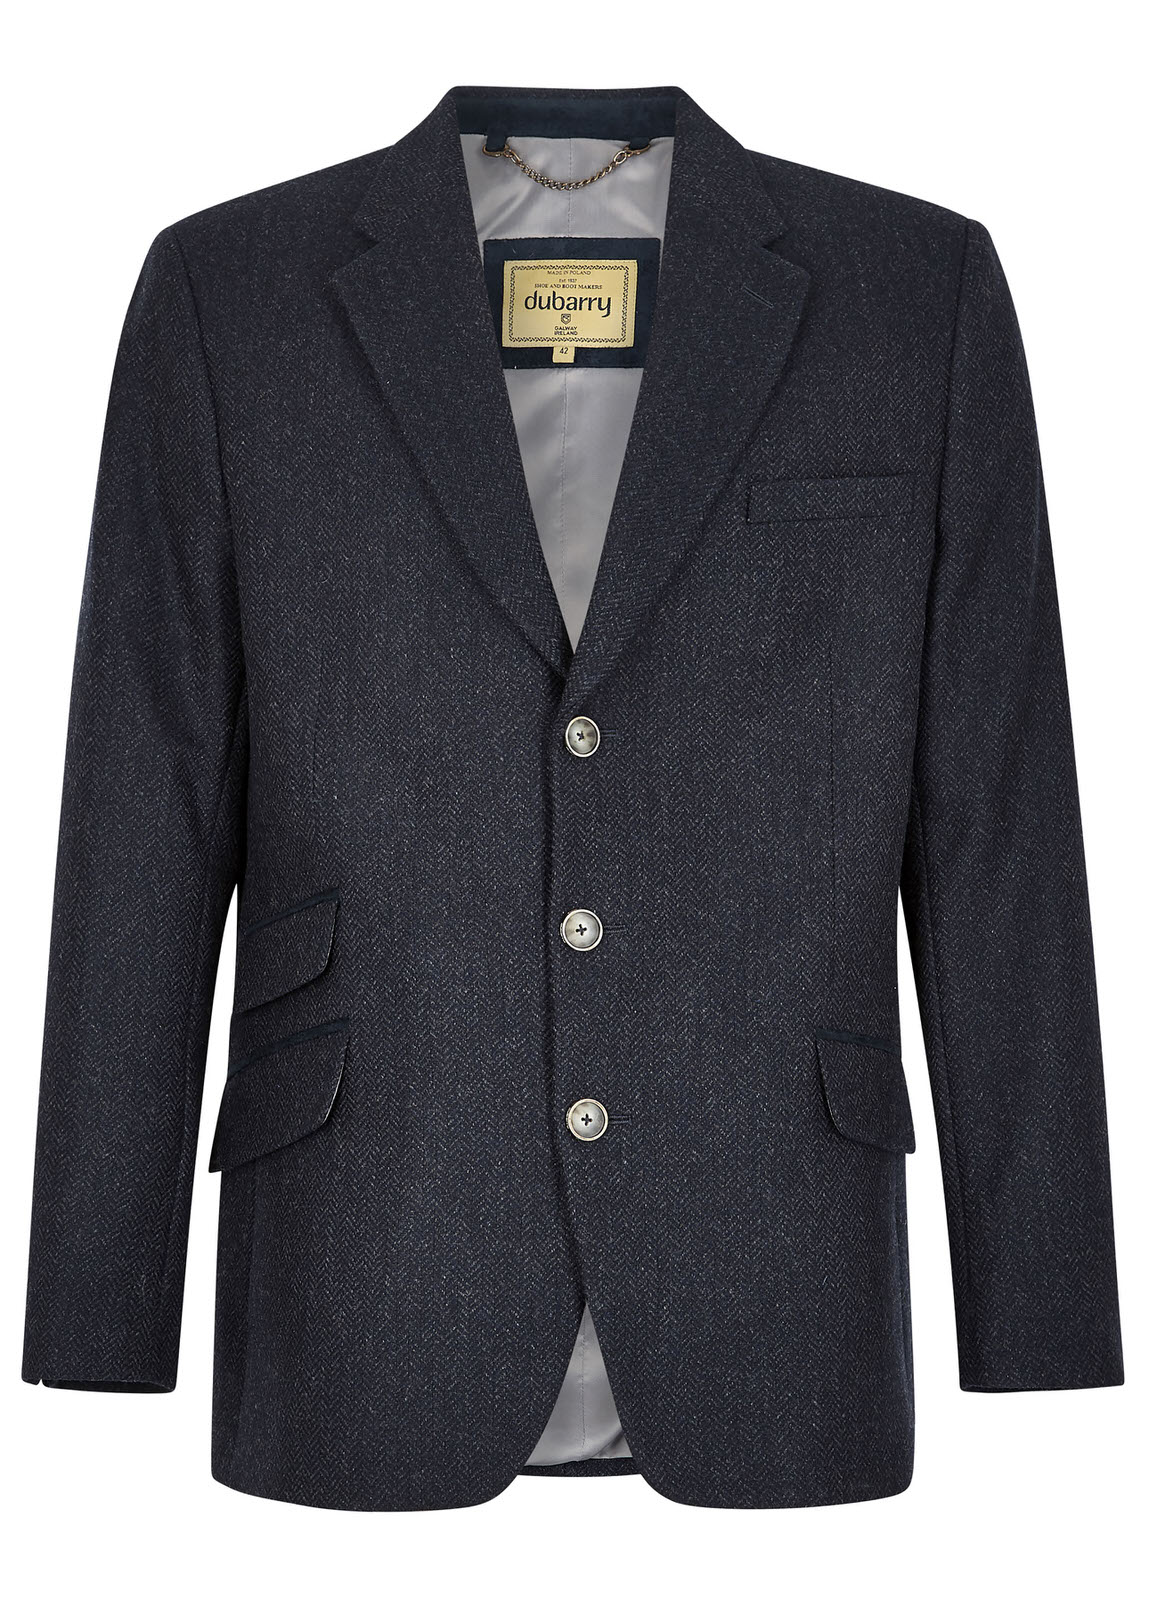 Rockingham_Tweed_Jacket_Navy/Bordo_Image_1